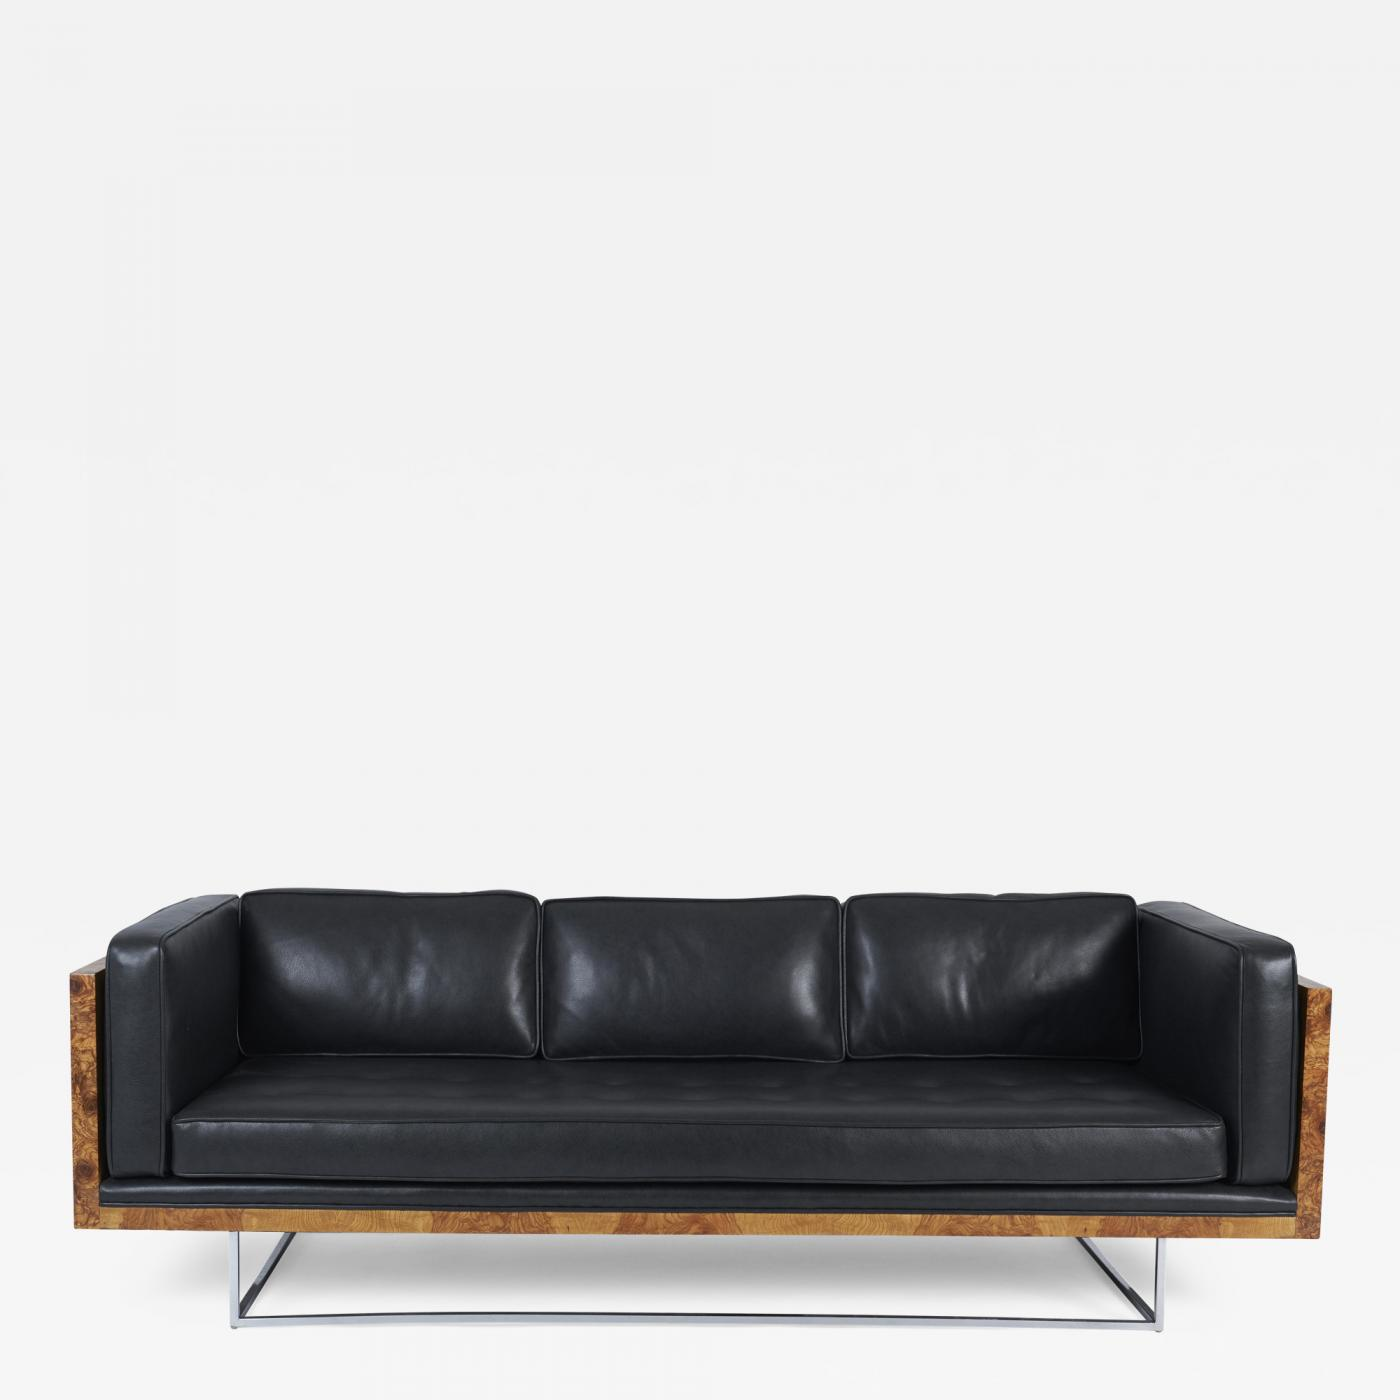 Milo Baughman - Burl Wood and Leather Case Sofa on Chrome Frame by Milo  Baughman